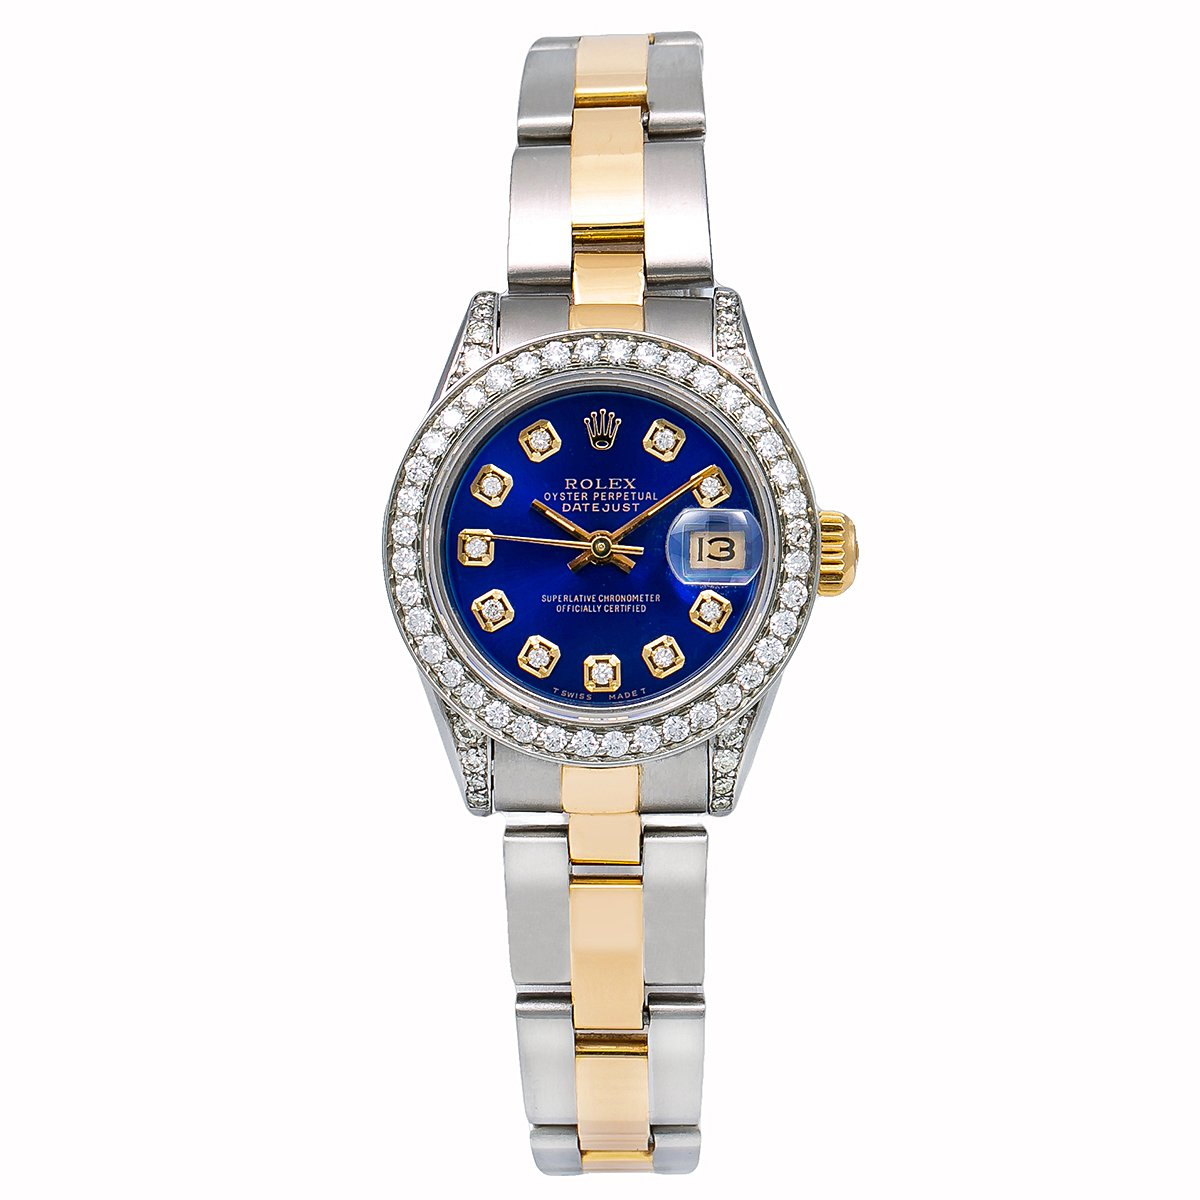 18k Gold Diamond Bezel Rolex Watch Lady-datejust 69173 26mm Blue Dial 0.9Ct Main Image